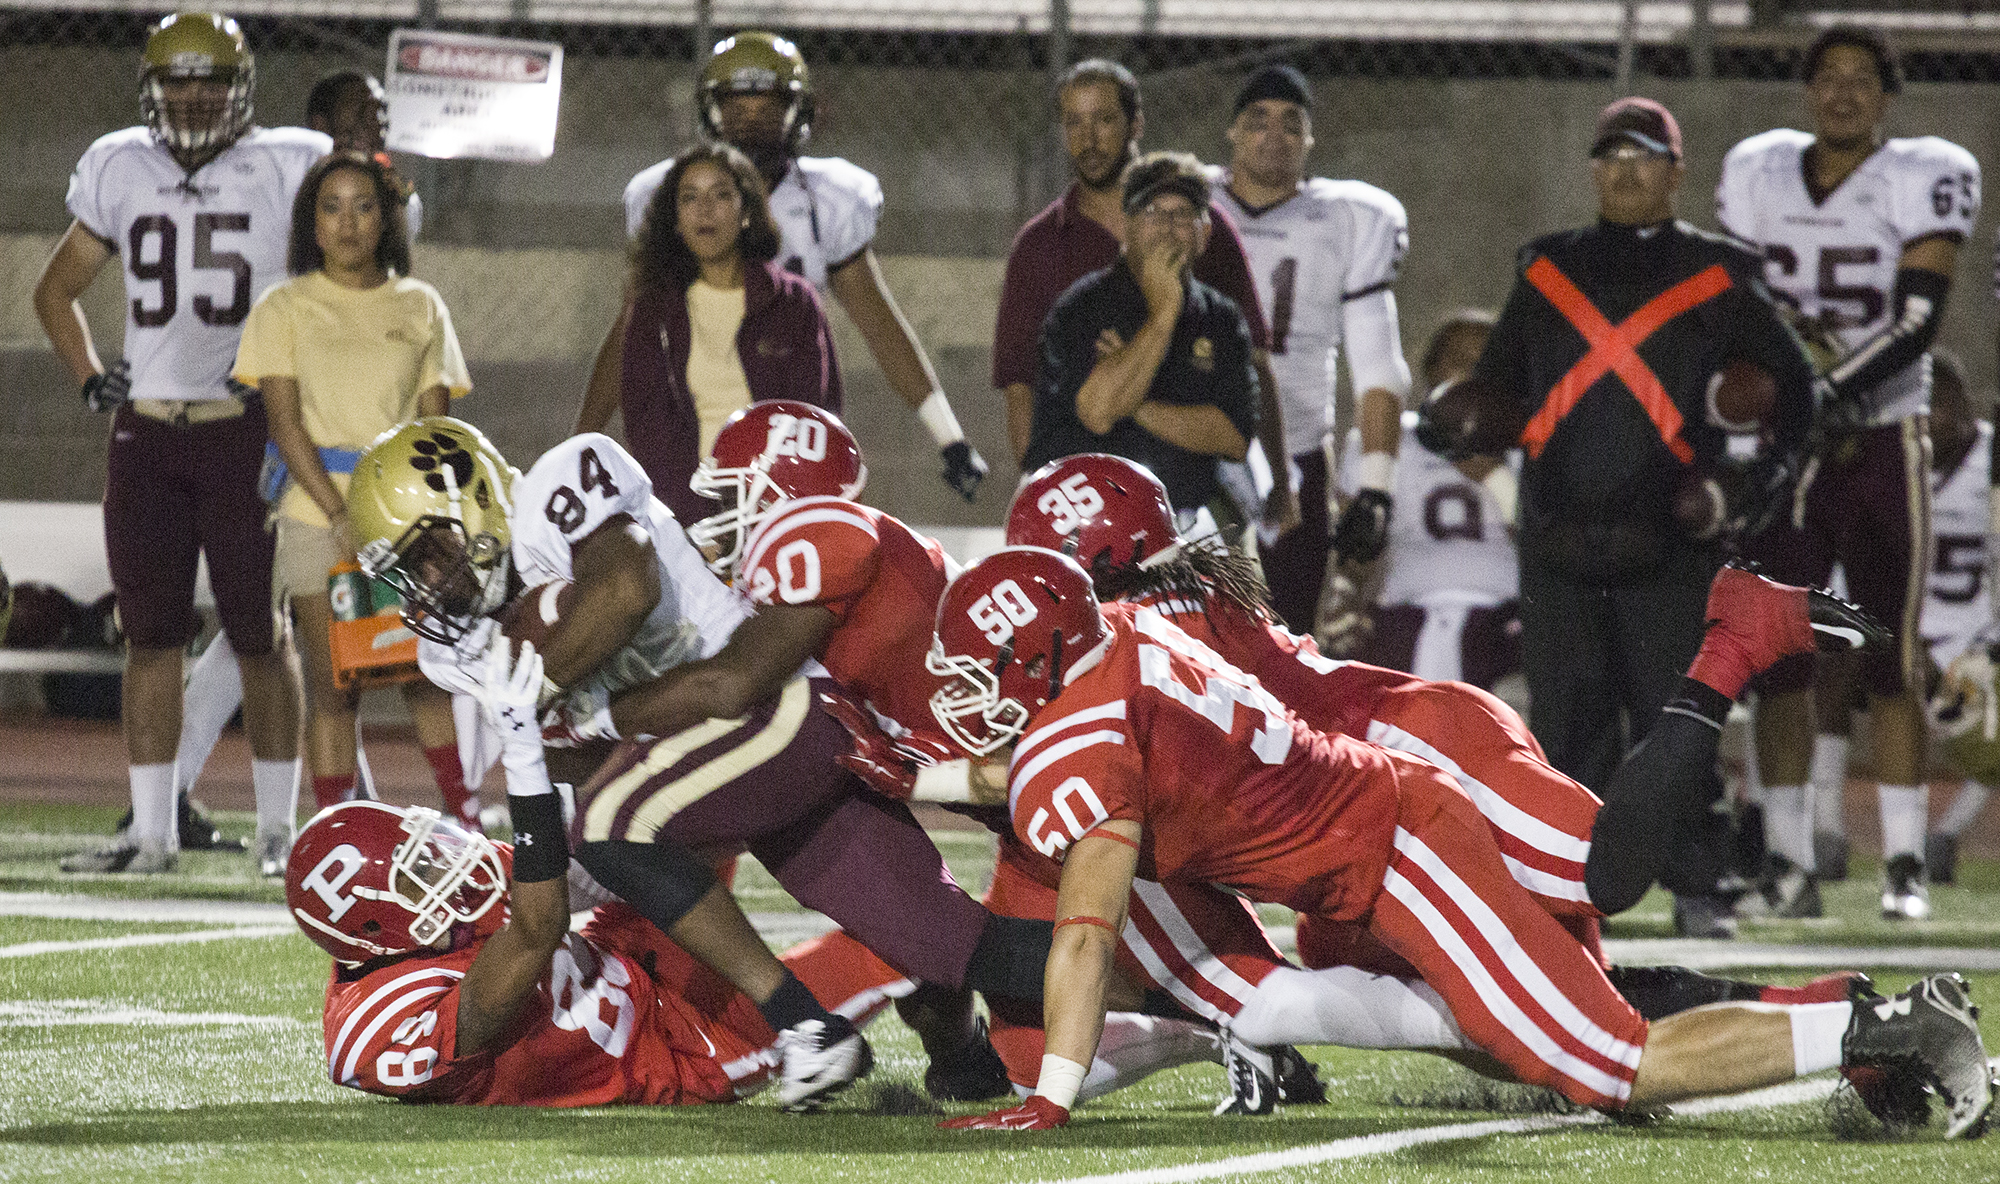 Home opener for Brahmas dominated by Southwestern